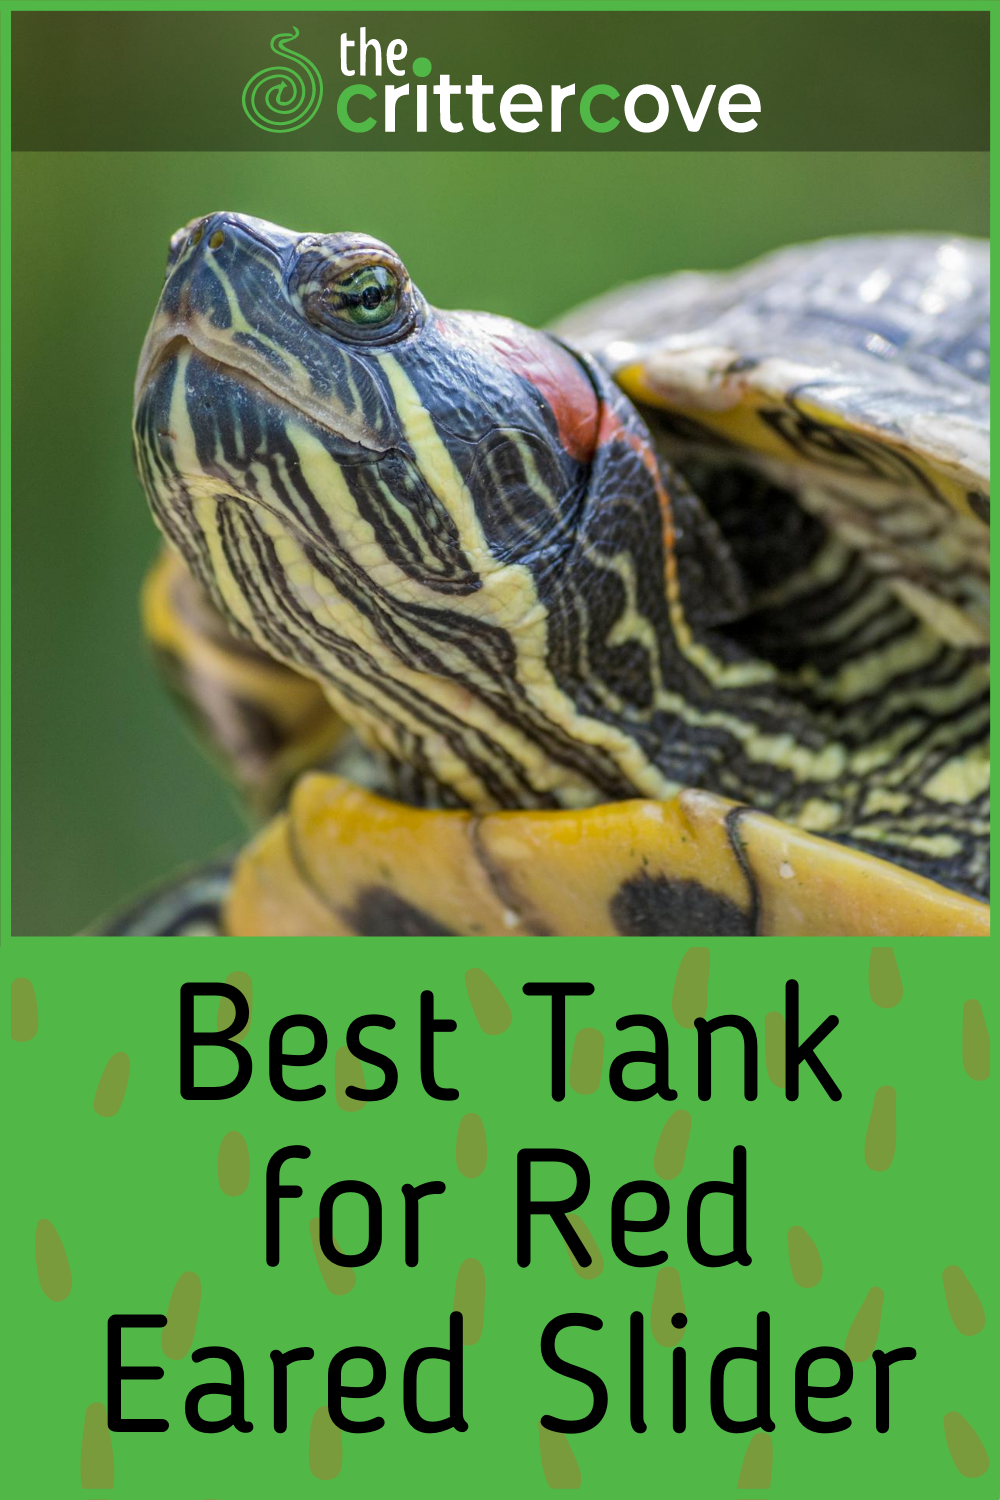 40++ What to feed red eared sliders ideas in 2021